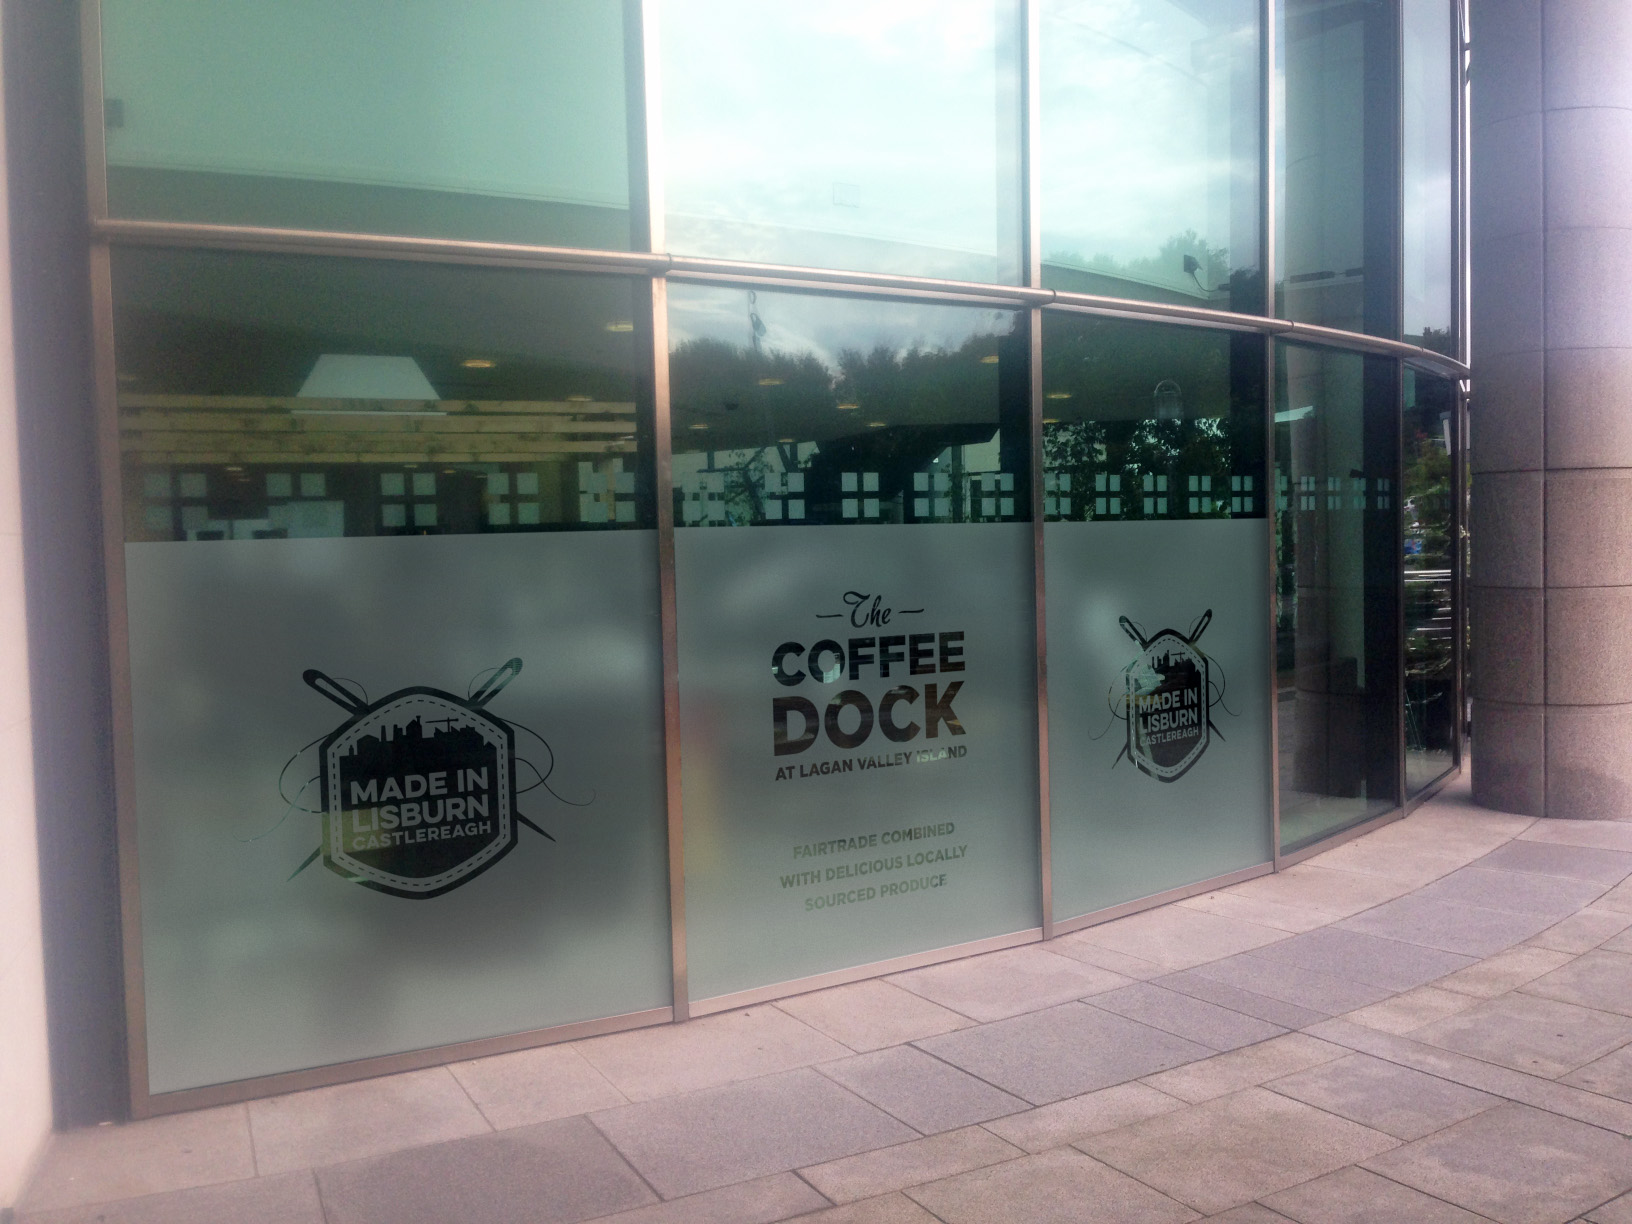 Fresh Coffee available at Coffee Dock